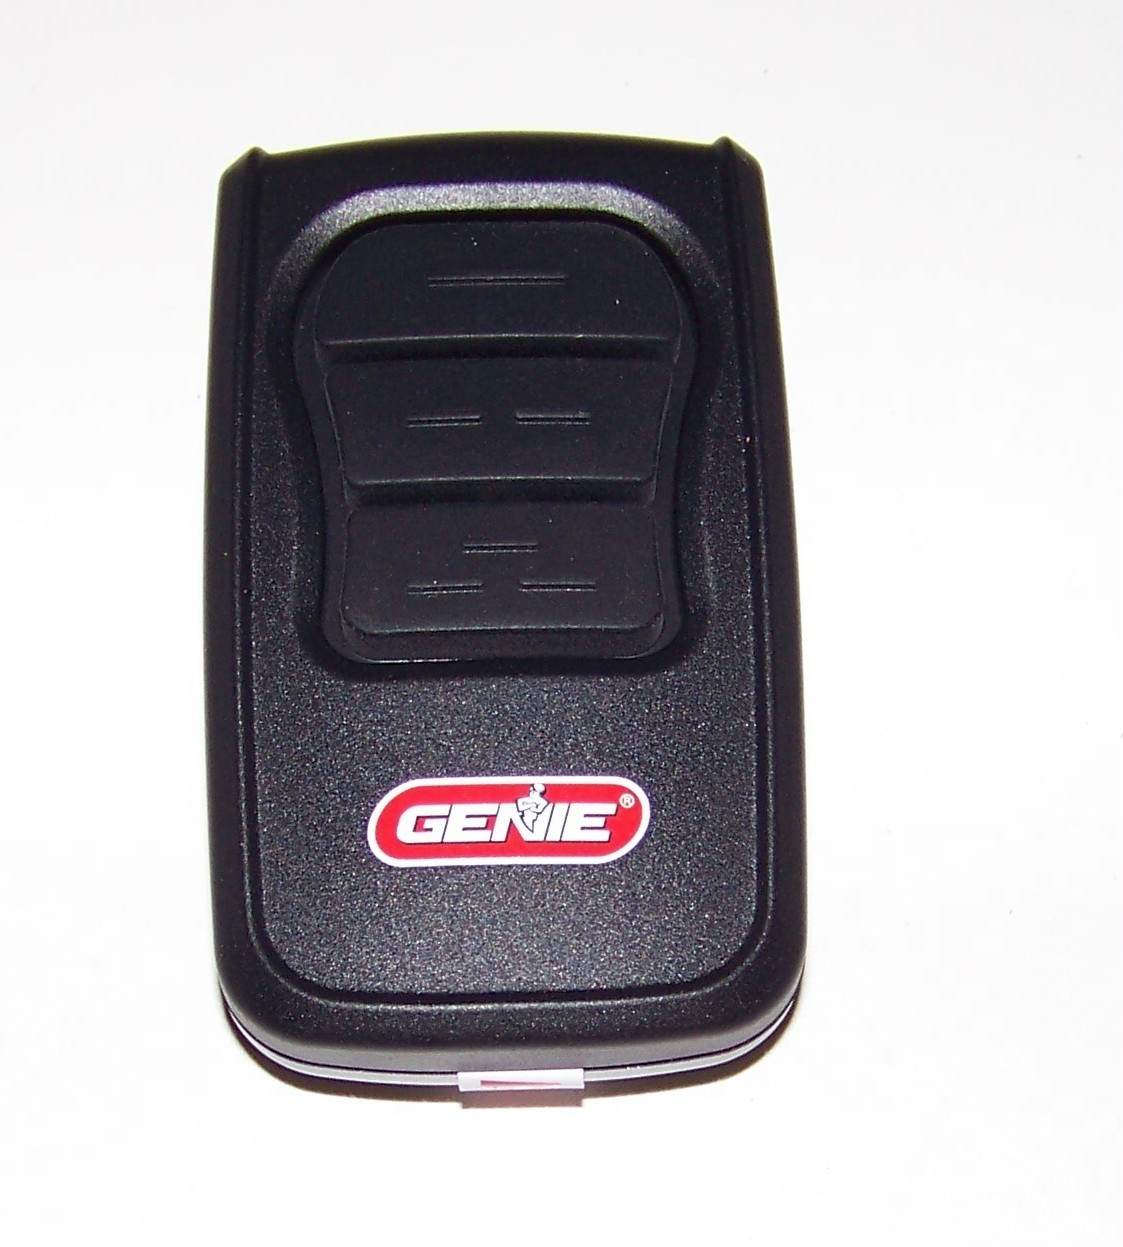 Garage door opener remote genie garage door opener remote How to select a garage door opener